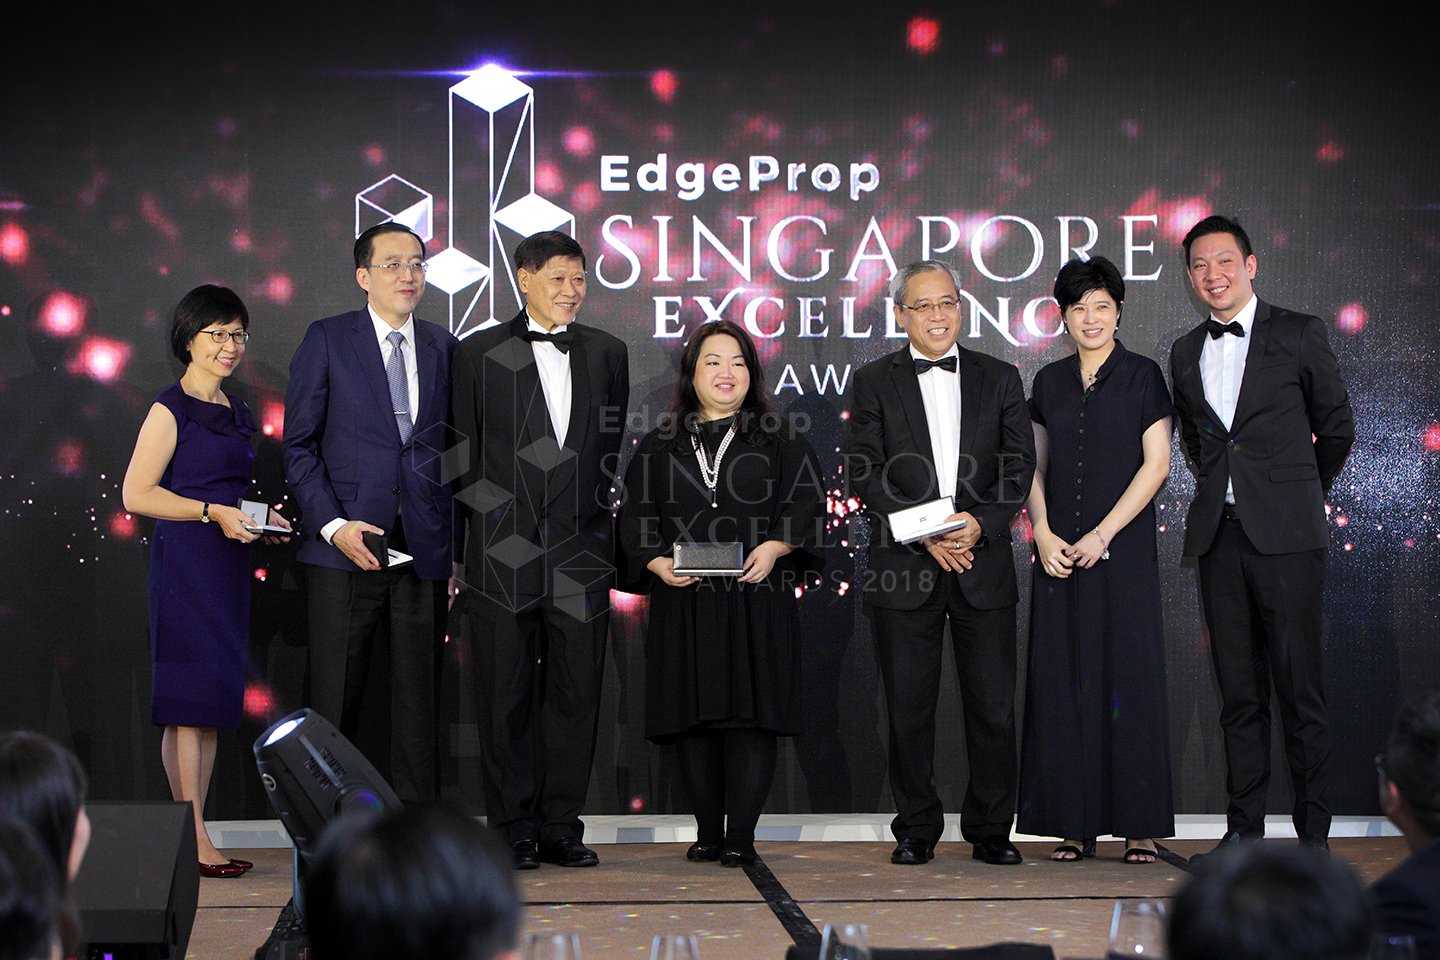 LEI_EDGEPROP_EXCELLENCE_AWARDS_2018_57_SIC.jpg